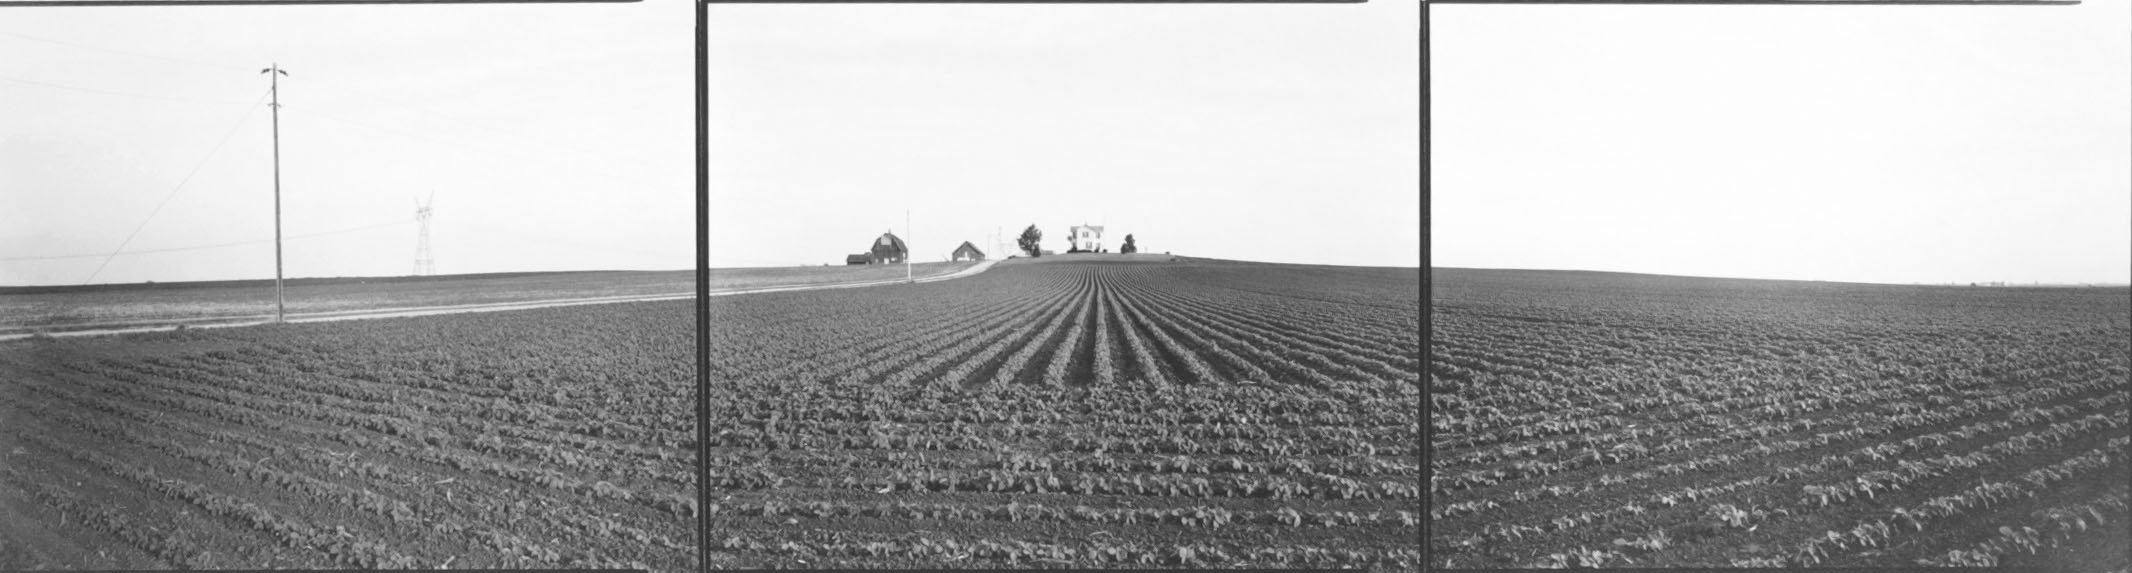 Roy Kagel Farm, McLean County, Illinois, from Farm Families Project